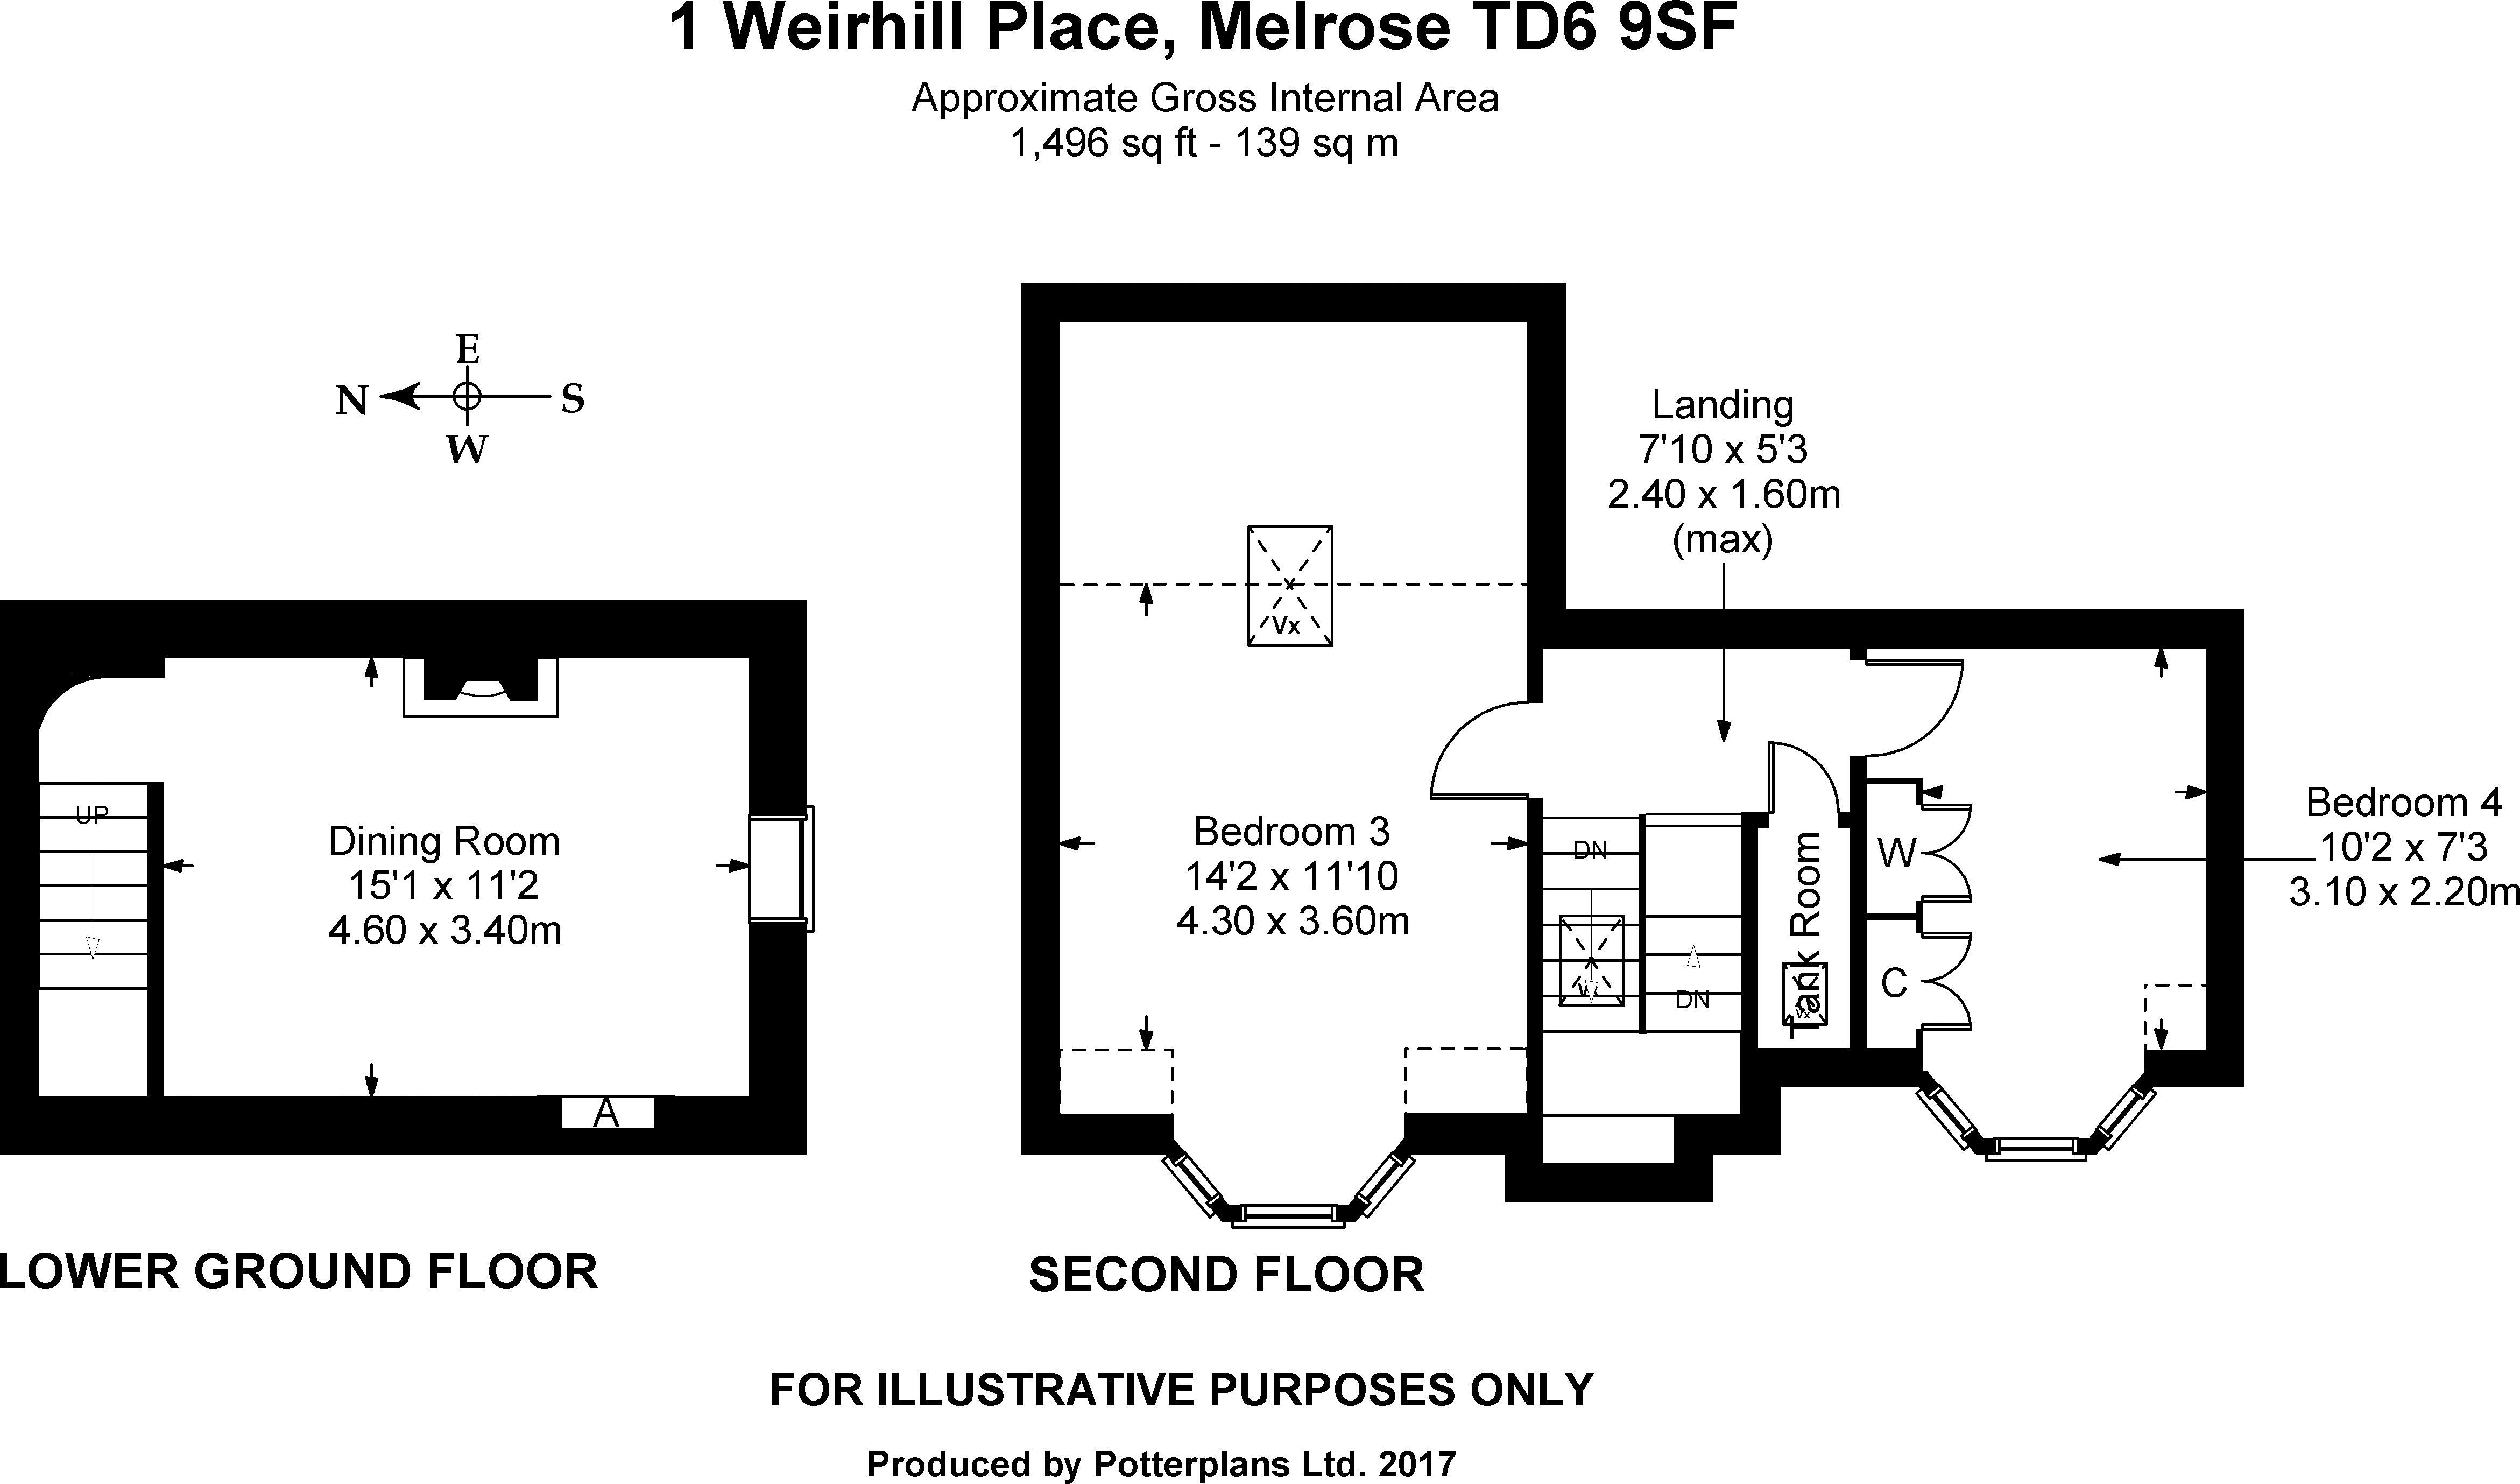 1 Weirhill Place 2nd Floor & Lower Ground Floor